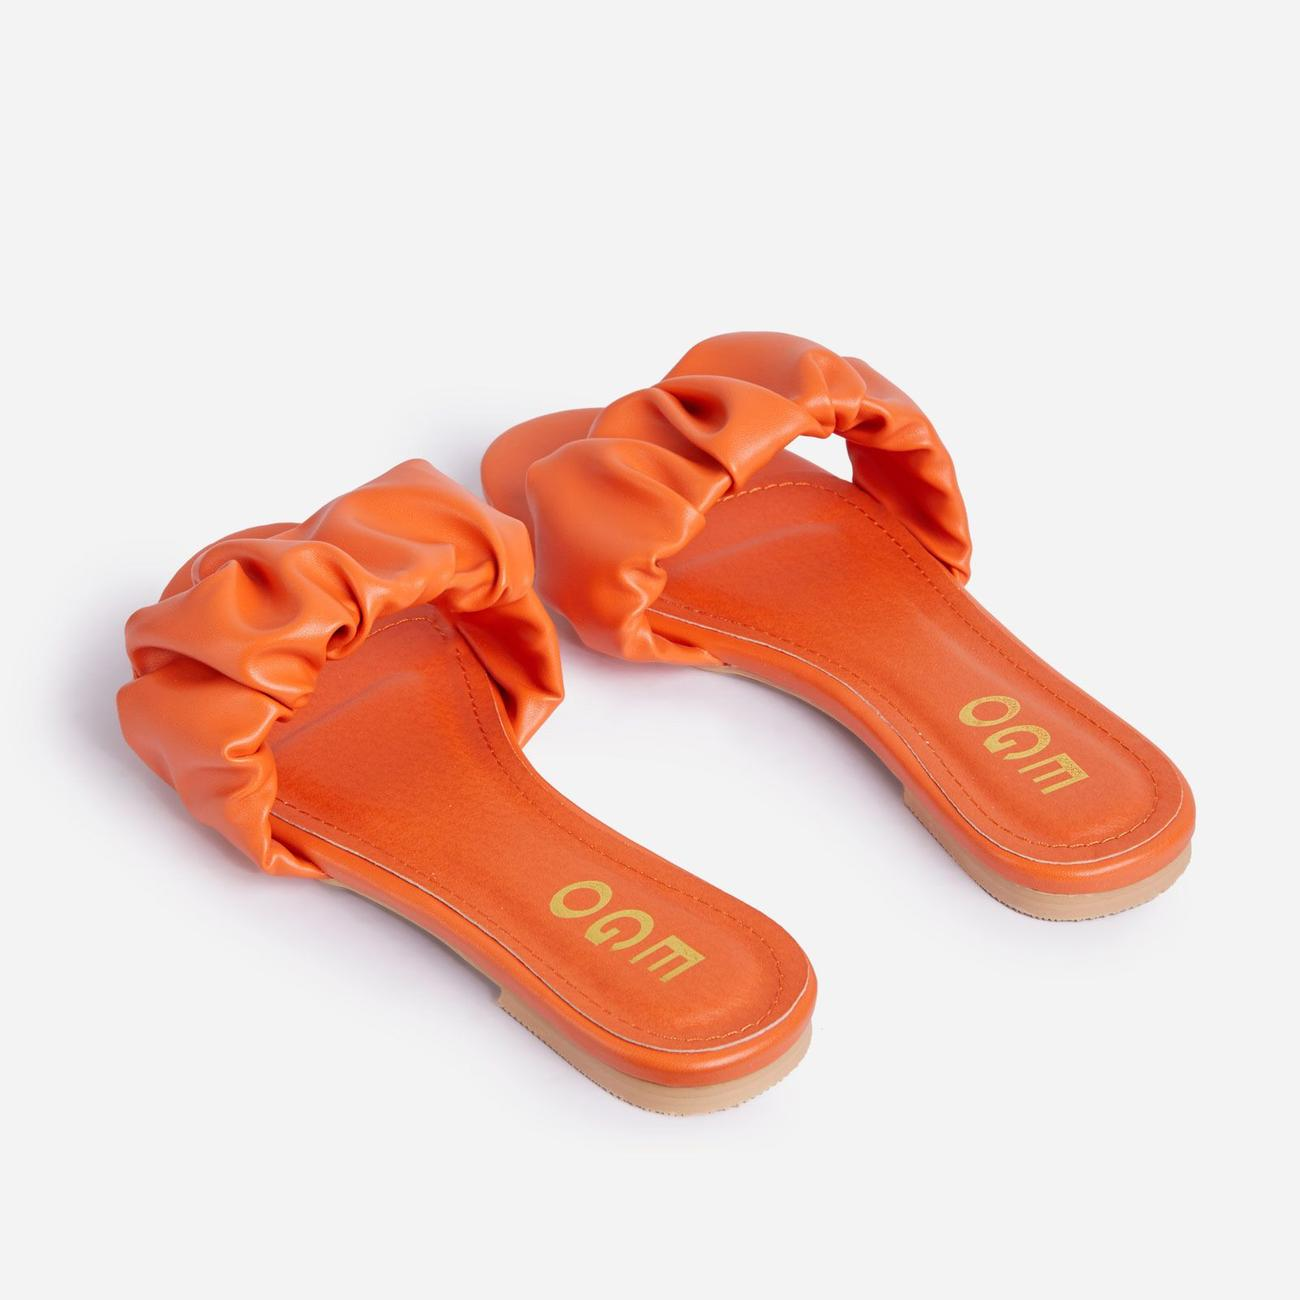 Tender Ruched Flat Slider Sandal In Orange Faux Leather Image 3